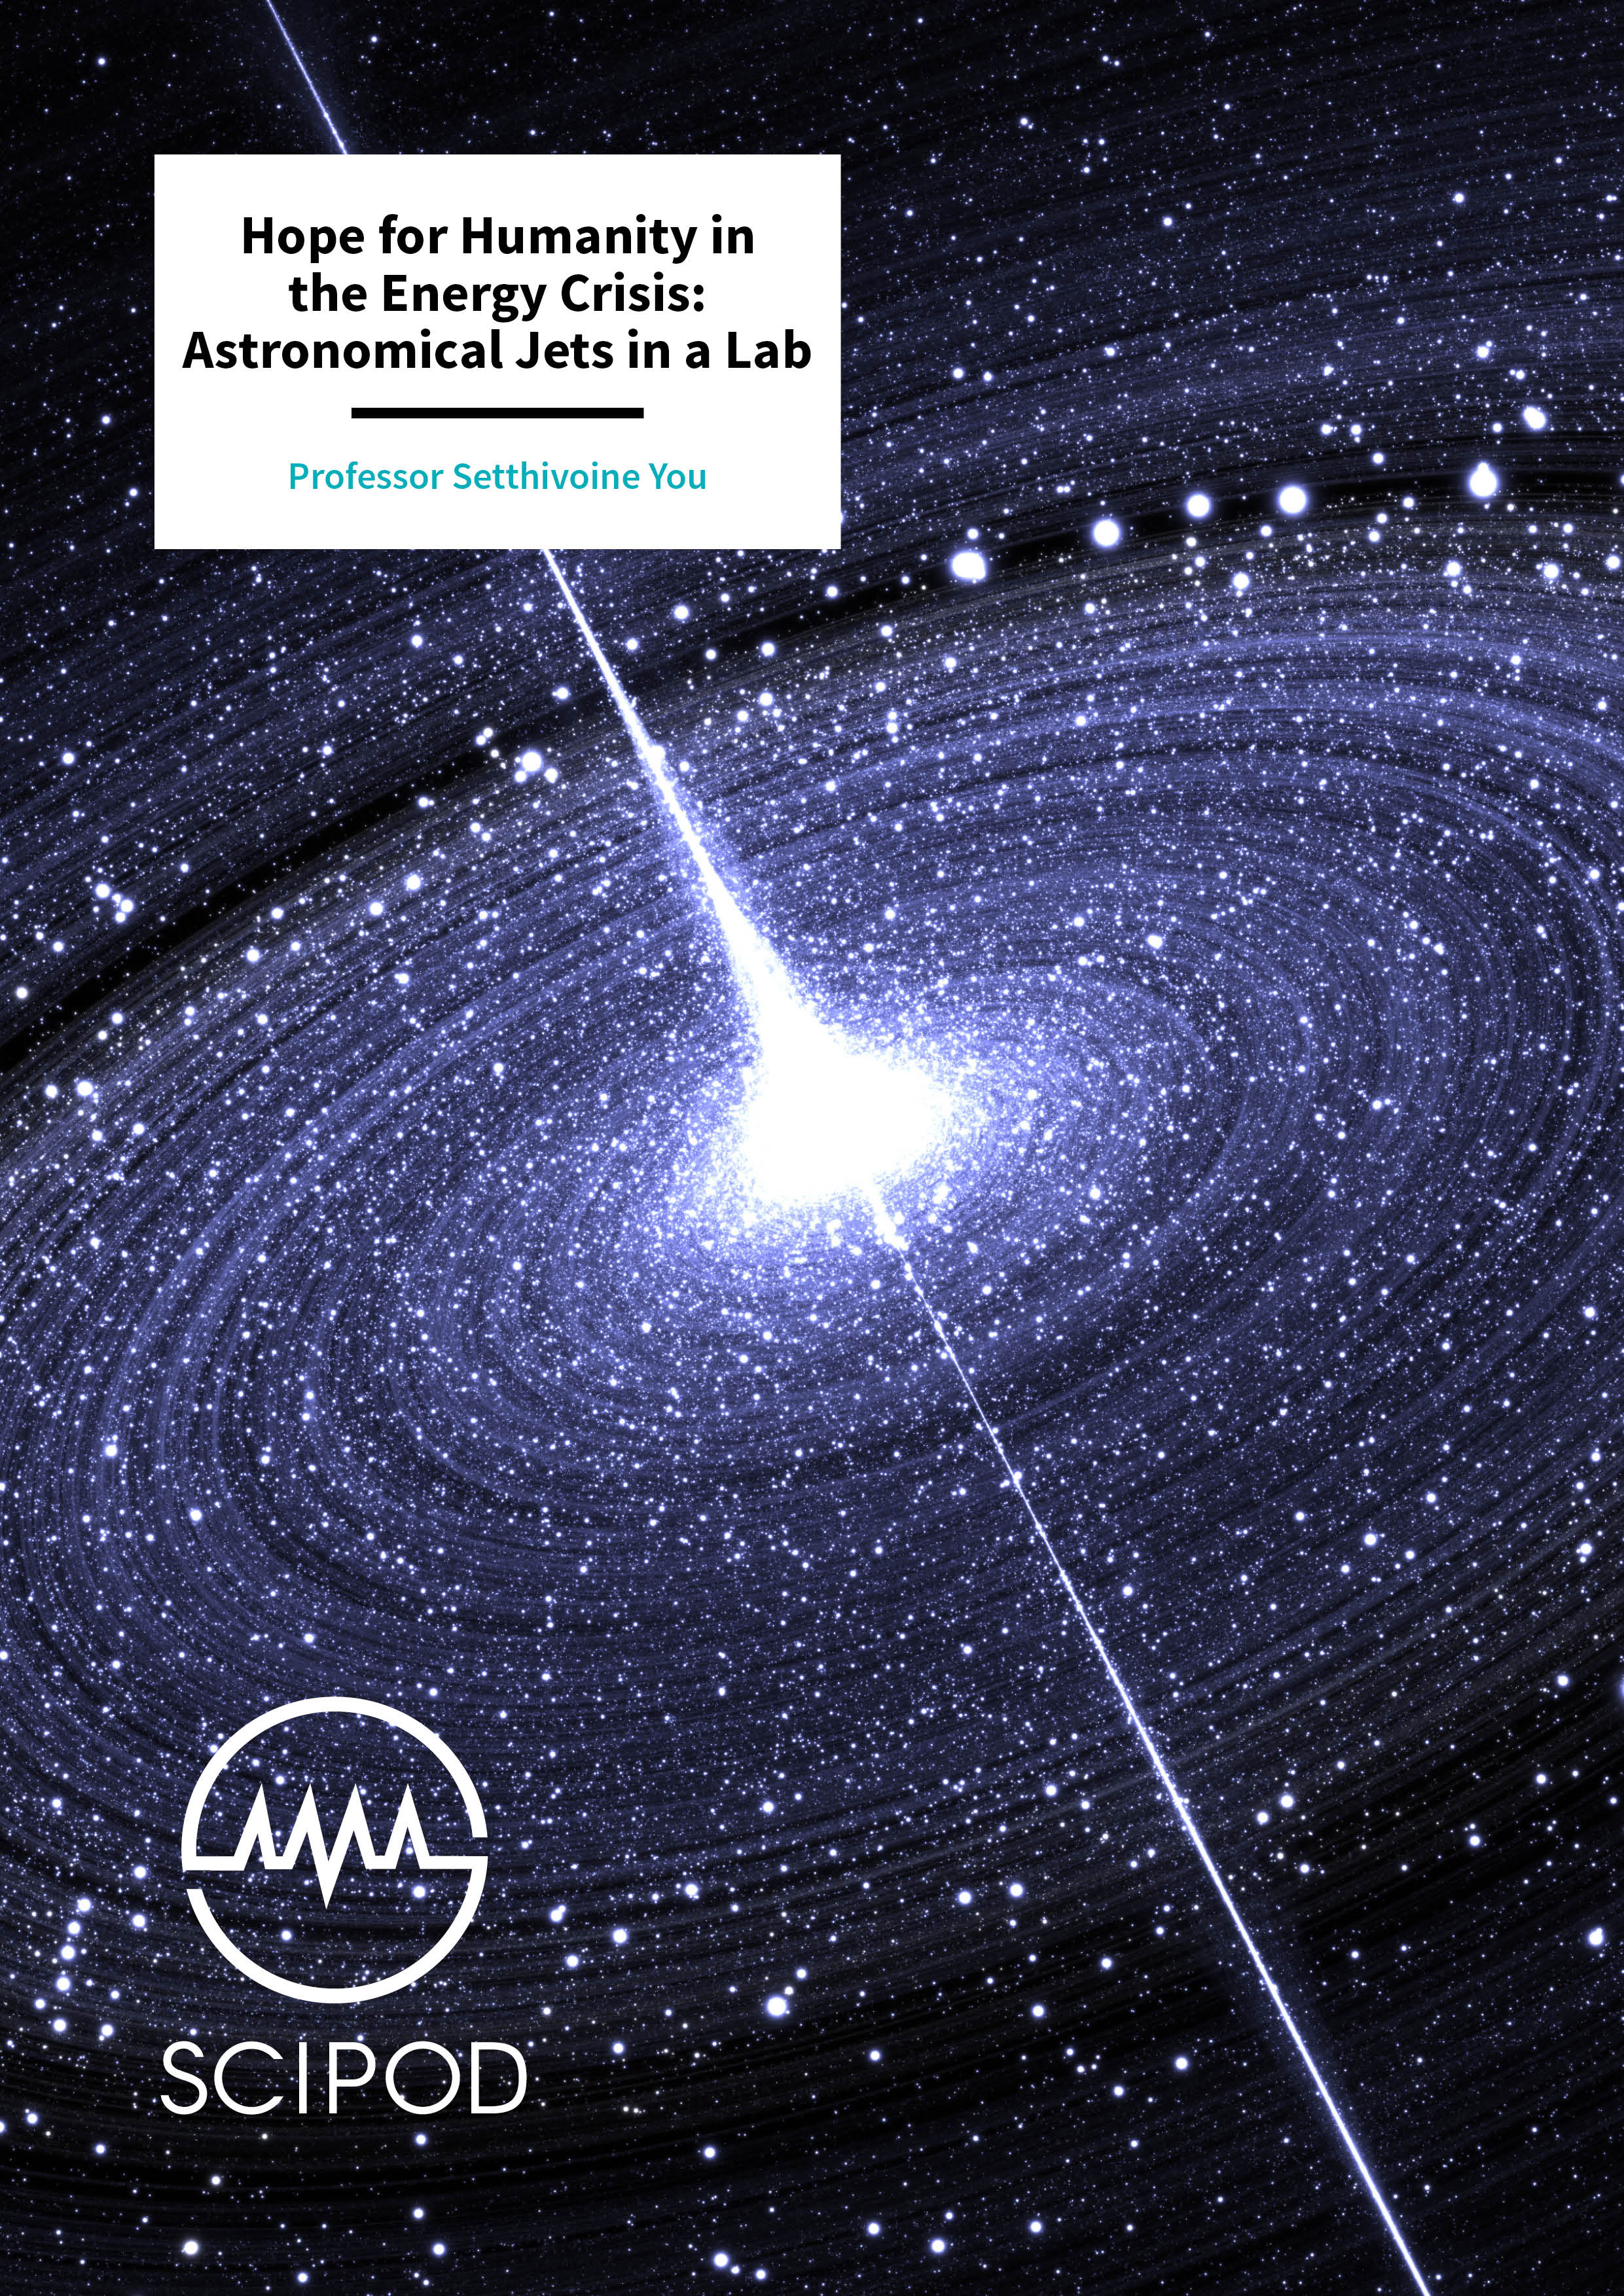 Hope for Humanity in the Energy Crisis: Astronomical Jets in a Lab – Professor Setthivoine You, University of Washington